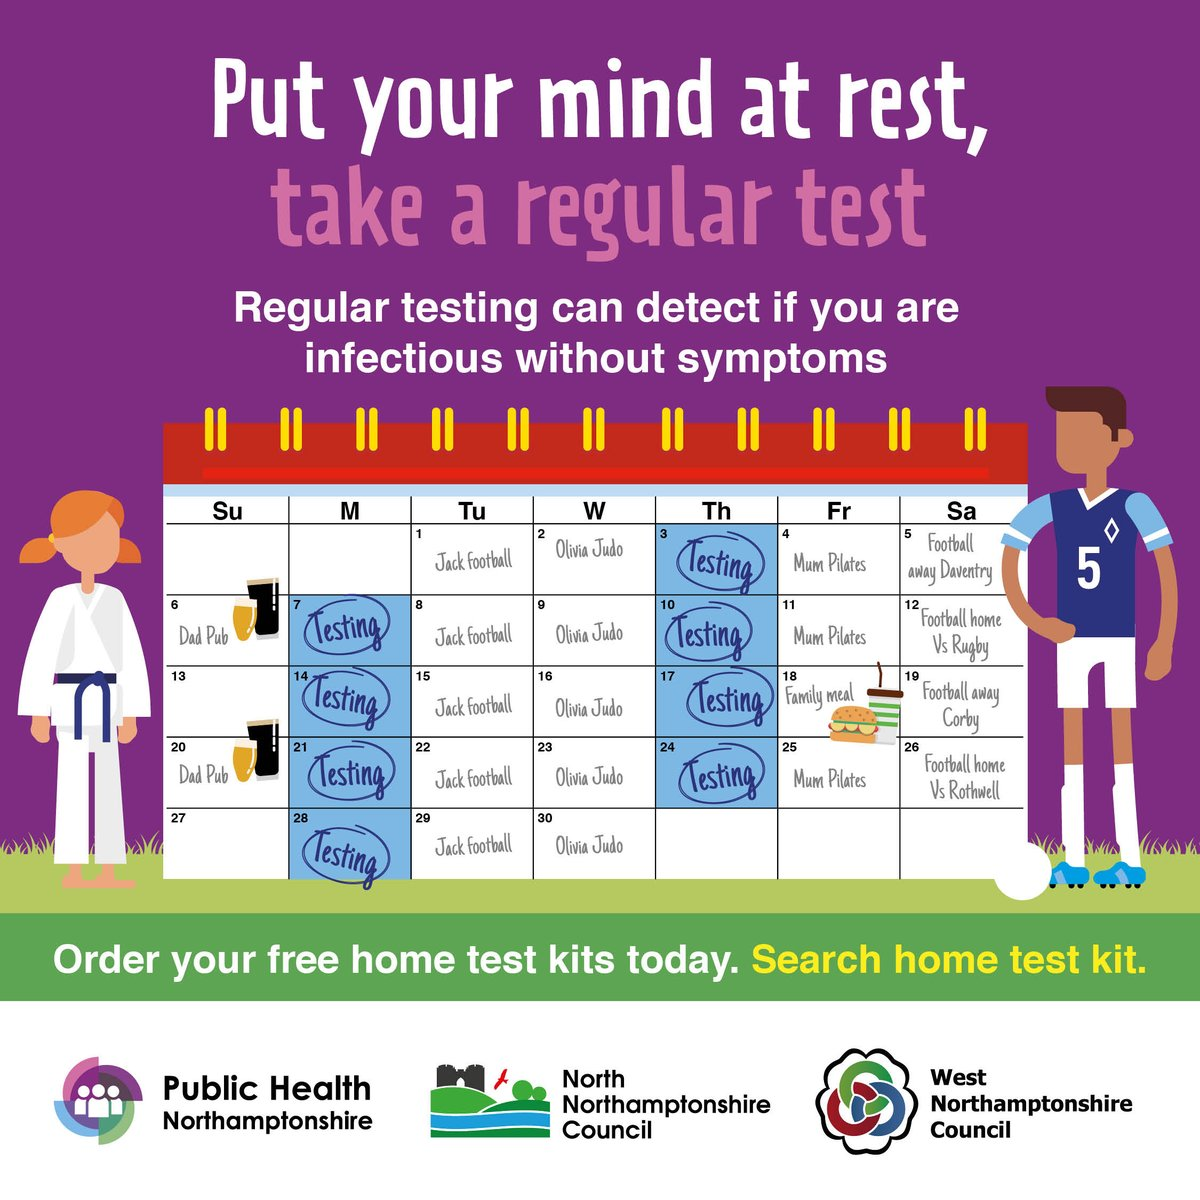 """Getting back to sport, means you're likely to be mixing with different people.  Testing regularly is the best way to help keep you and others safe!  You can get your free Covid test kits in most pharmacies and online by searching """"home test kit""""  @NNorthantsC @WestNorthants"""